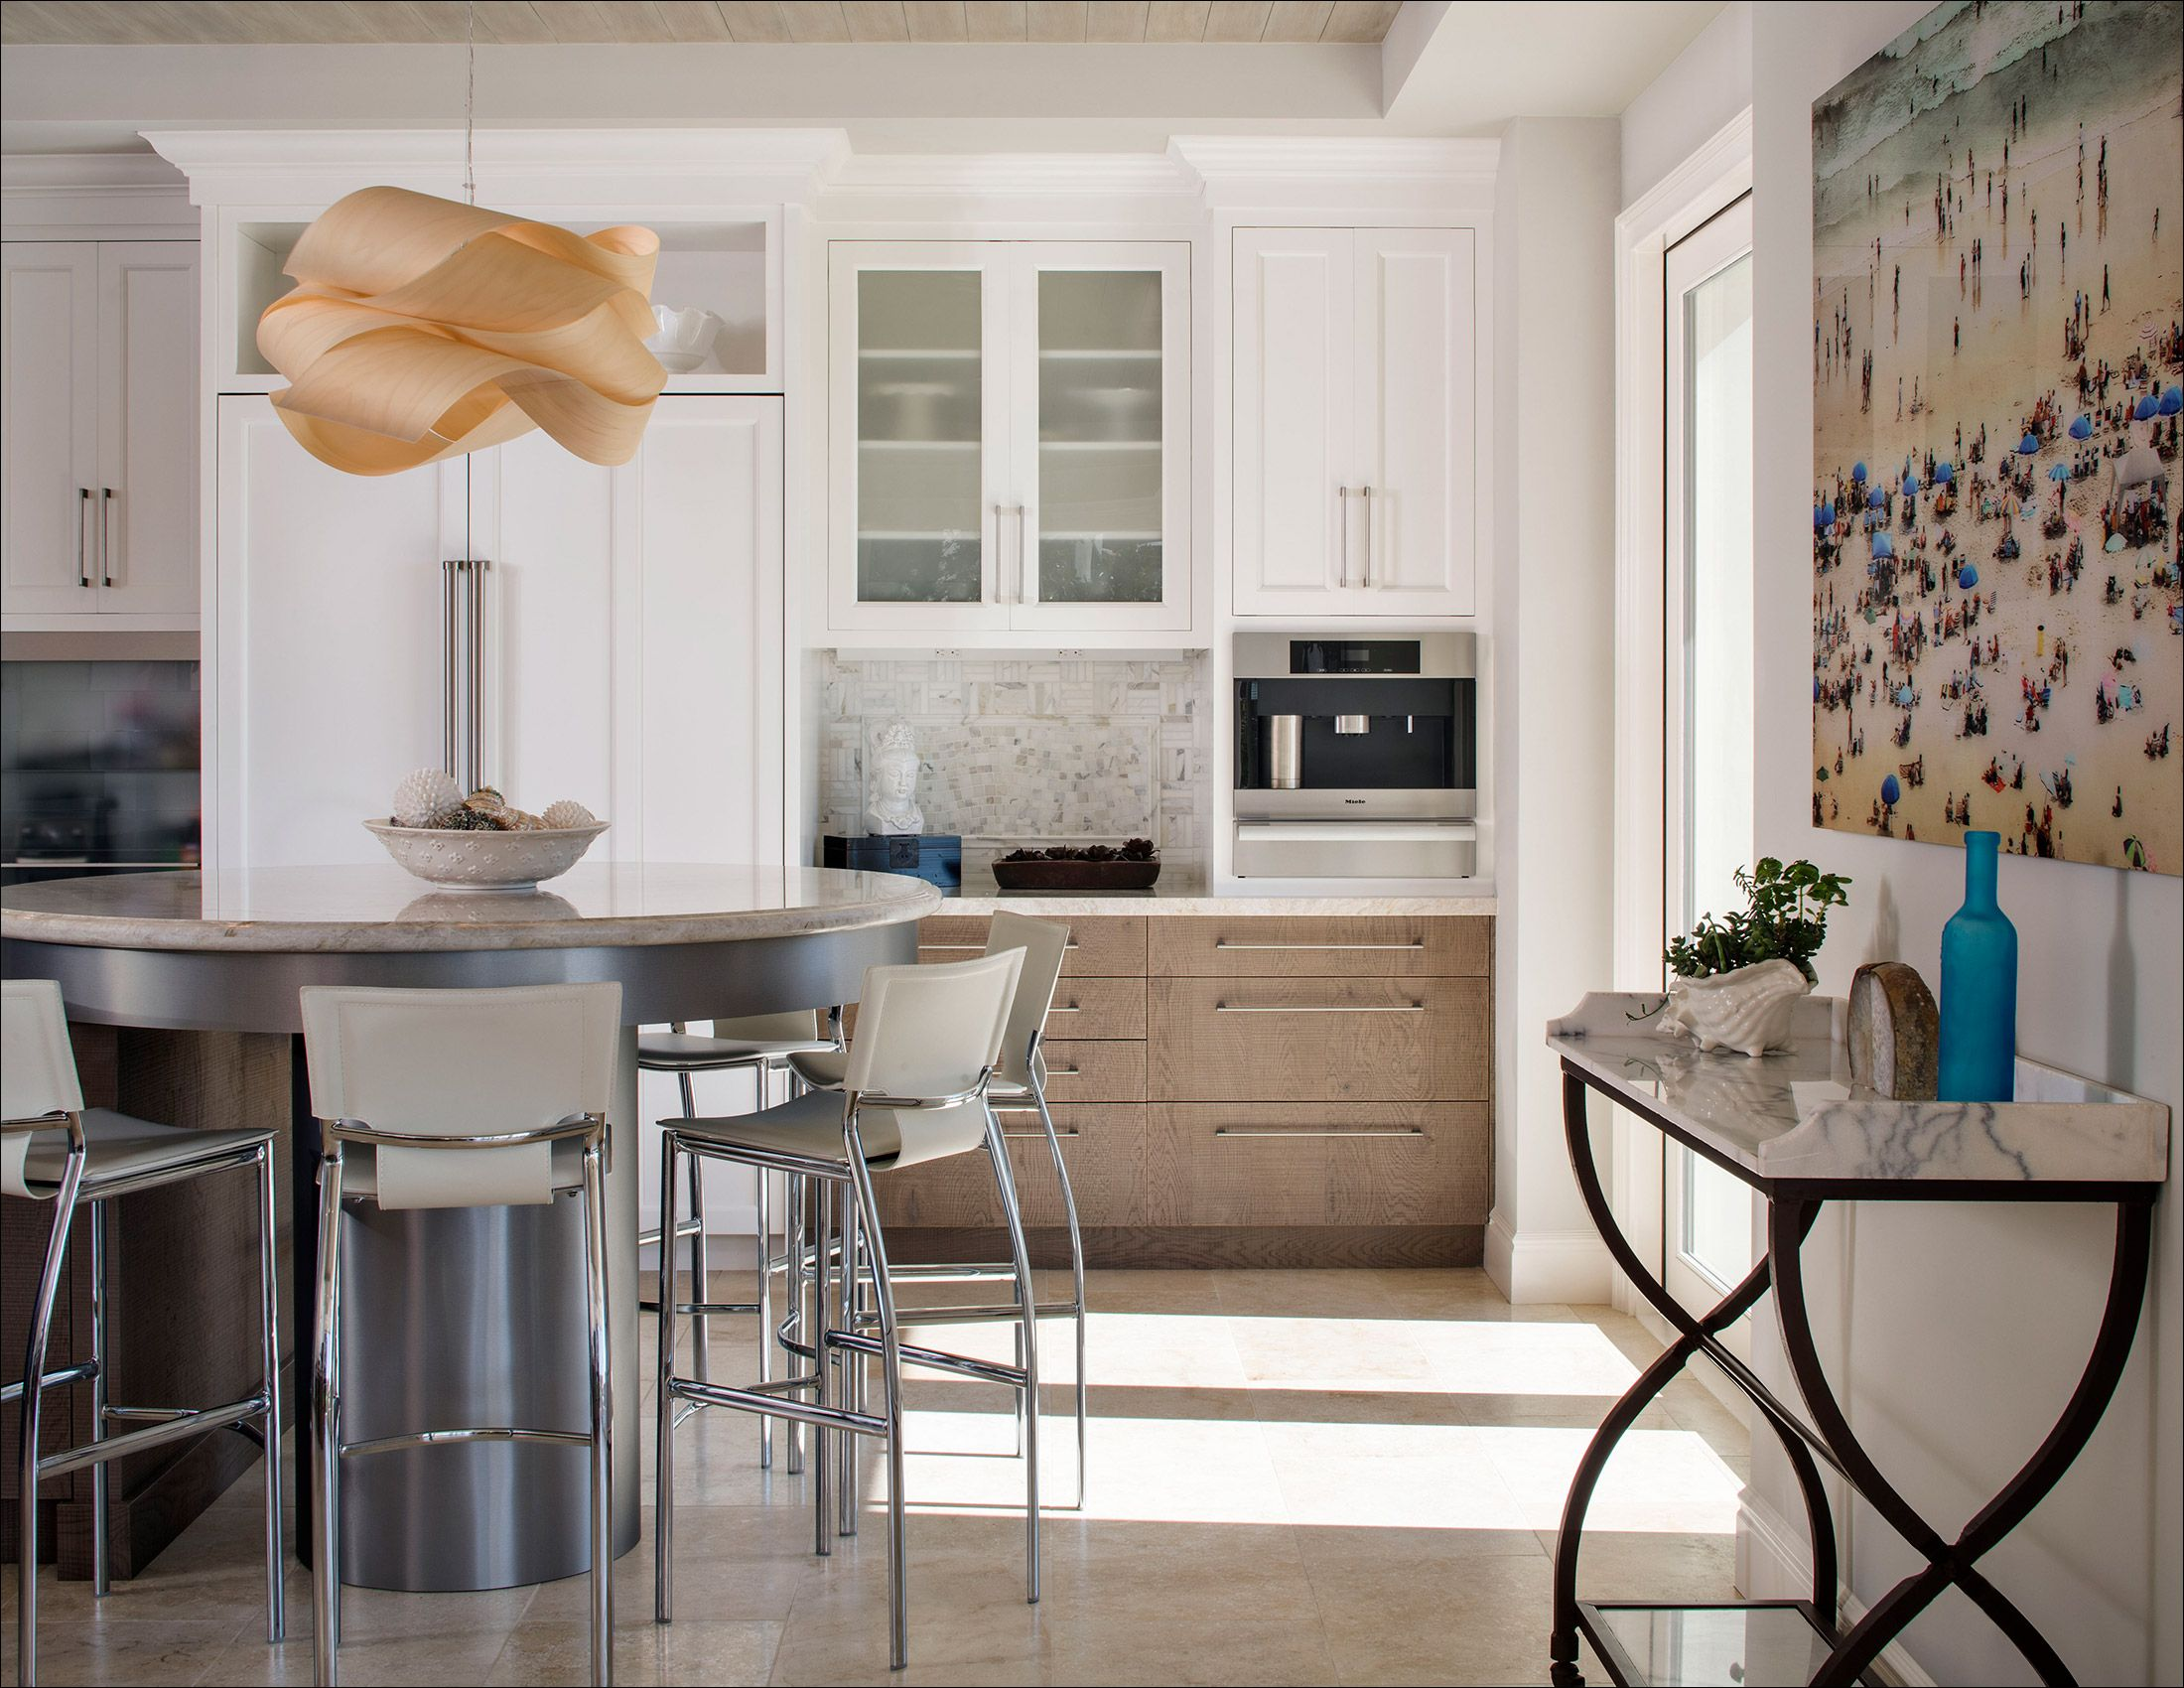 NewportBeach_KitchenDesign_InteriorPhotography.jpg